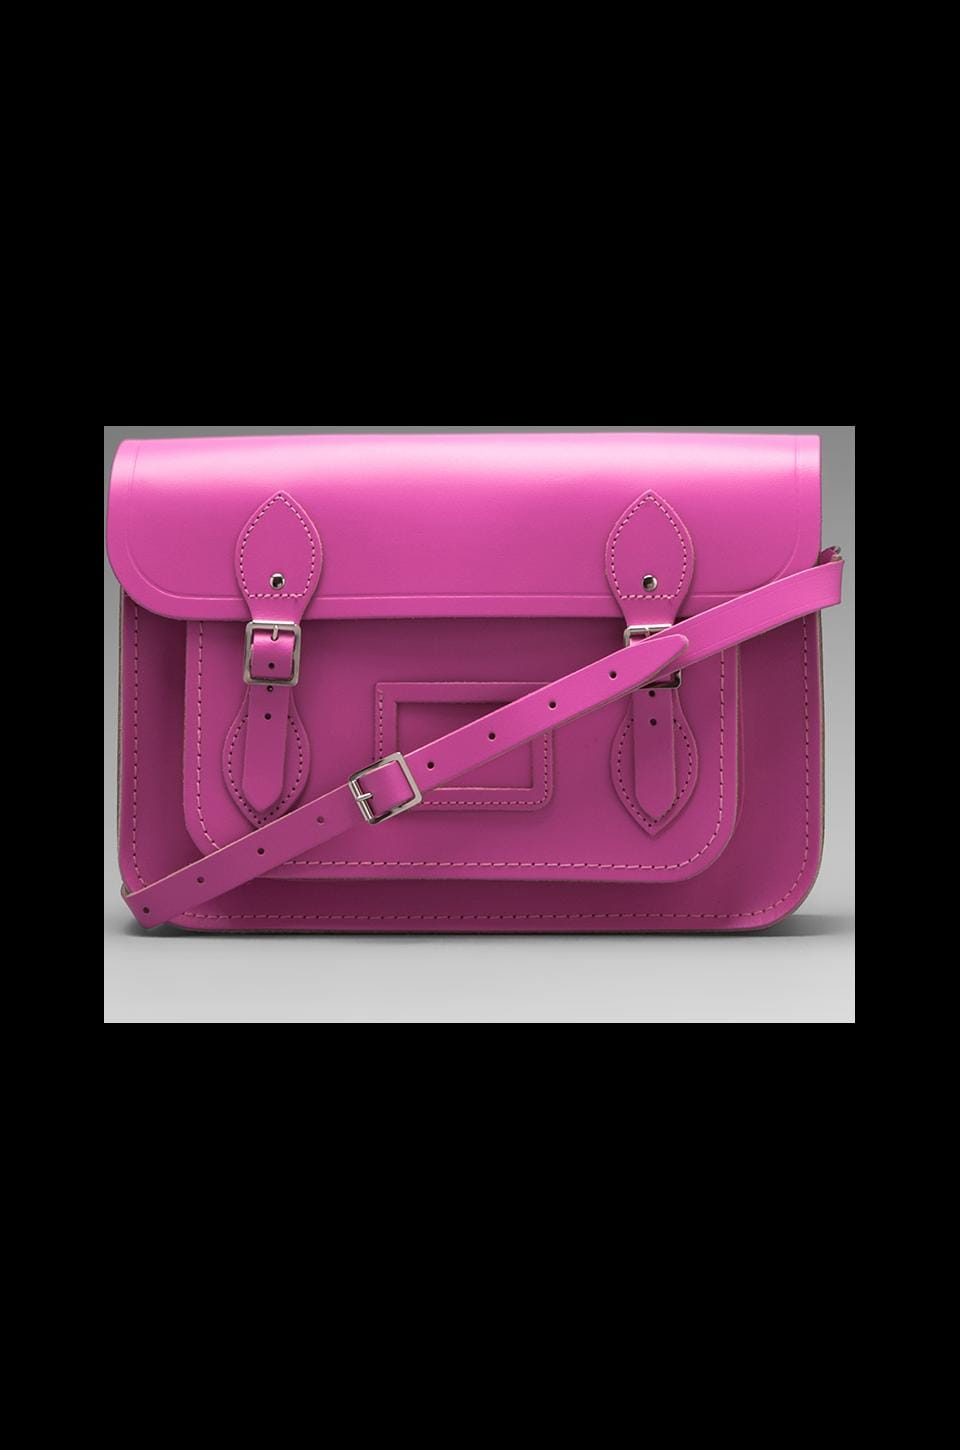 The Cambridge Satchel Company Core Collection 13'' Satchel in Pink